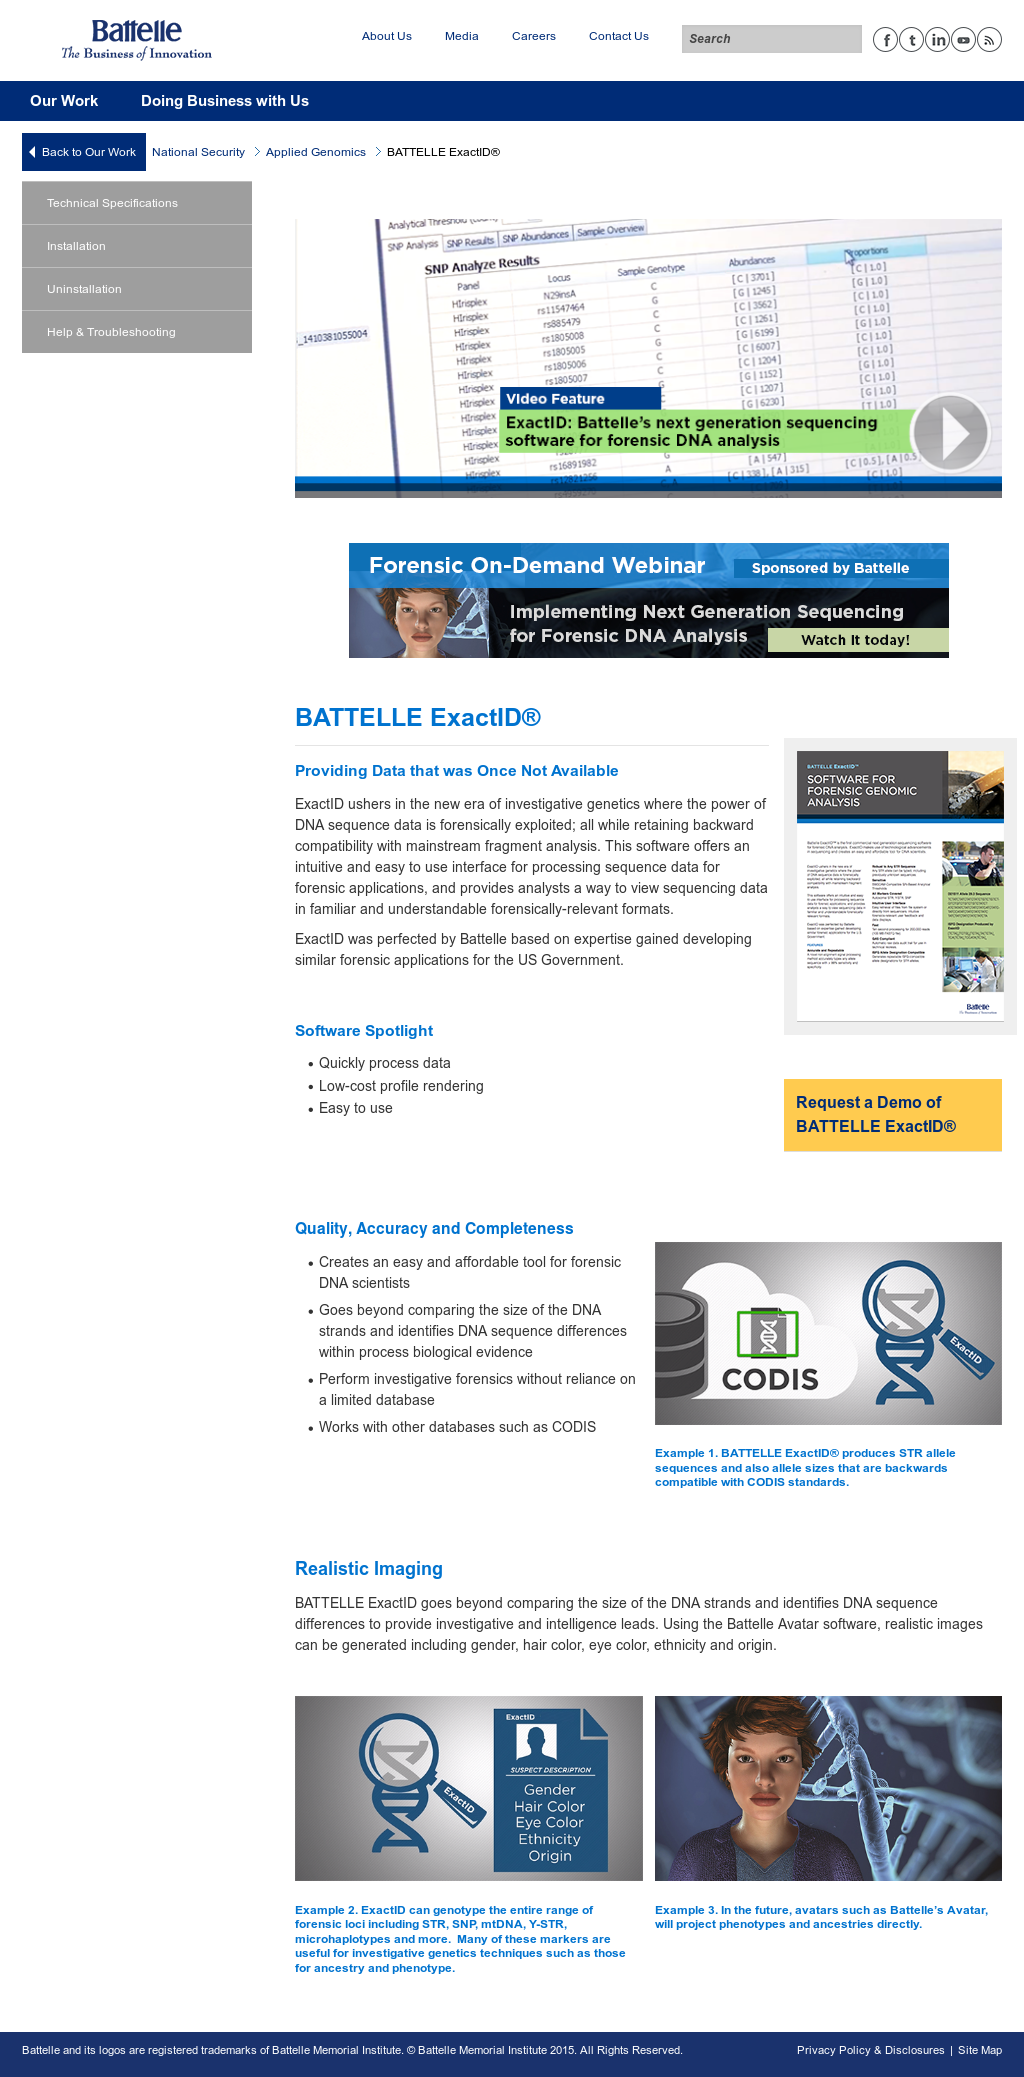 Battelleexactid Competitors, Revenue and Employees - Owler